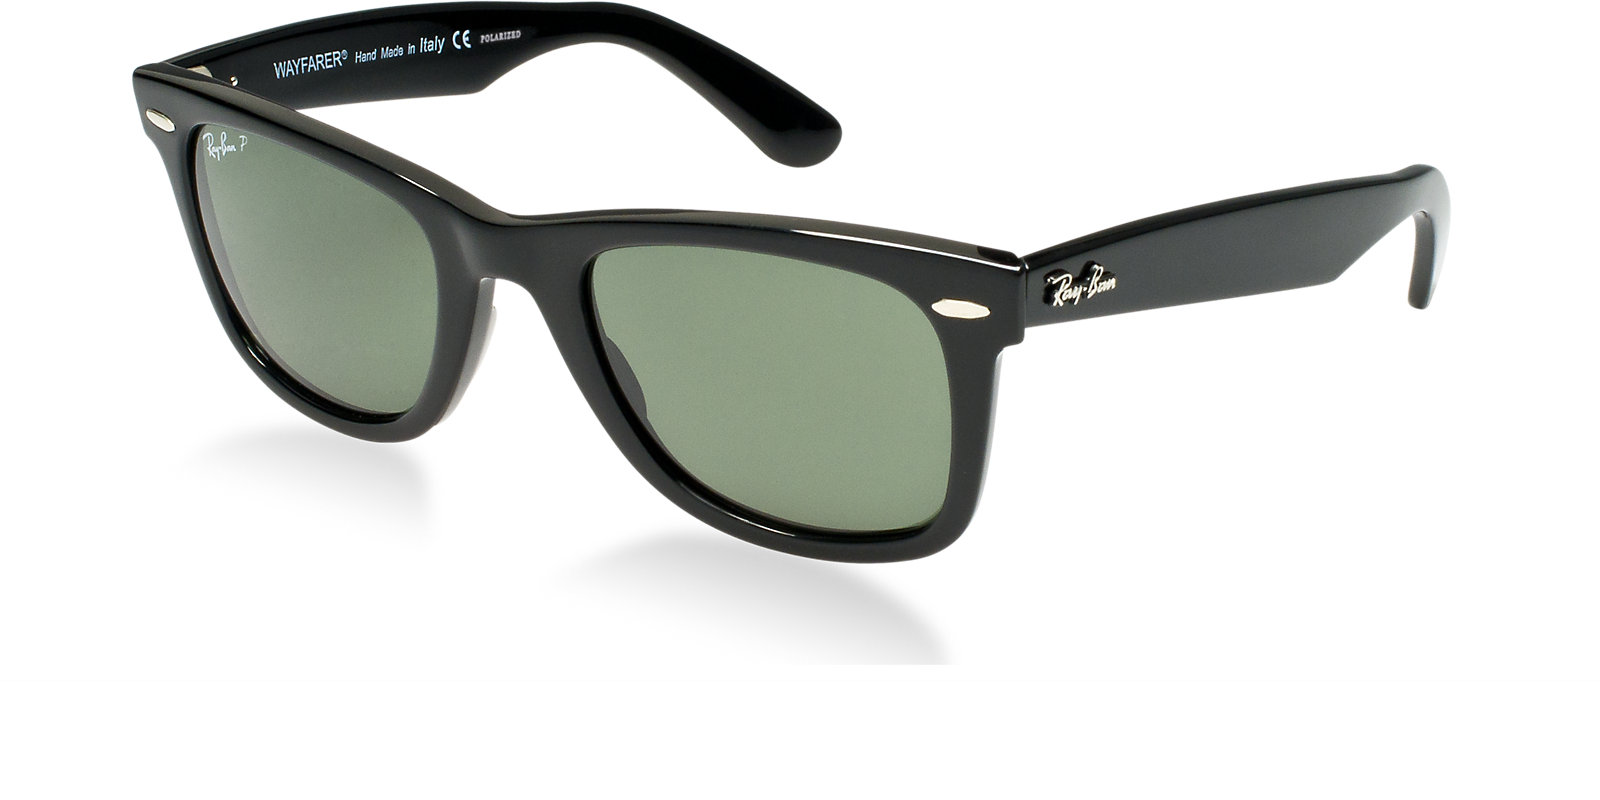 dd071a9faa RAY-BAN RB2140 901 58 BLACK POLARIZED CLASSIC WAYFARER SUNGLASSES ...